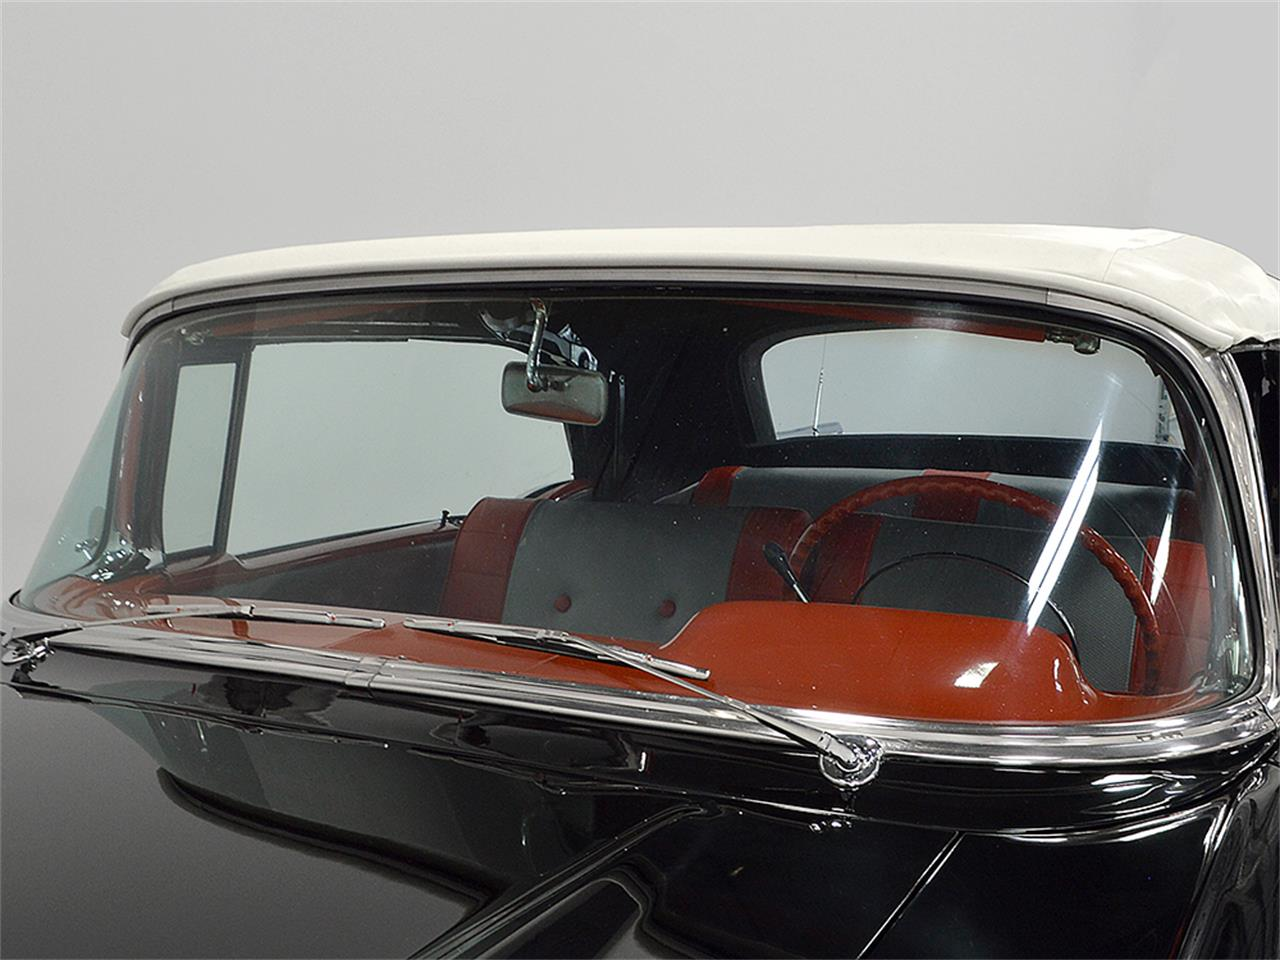 Large Picture of '57 Chevrolet Bel Air located in Ohio - $74,900.00 Offered by Harwood Motors, LTD. - M6IV